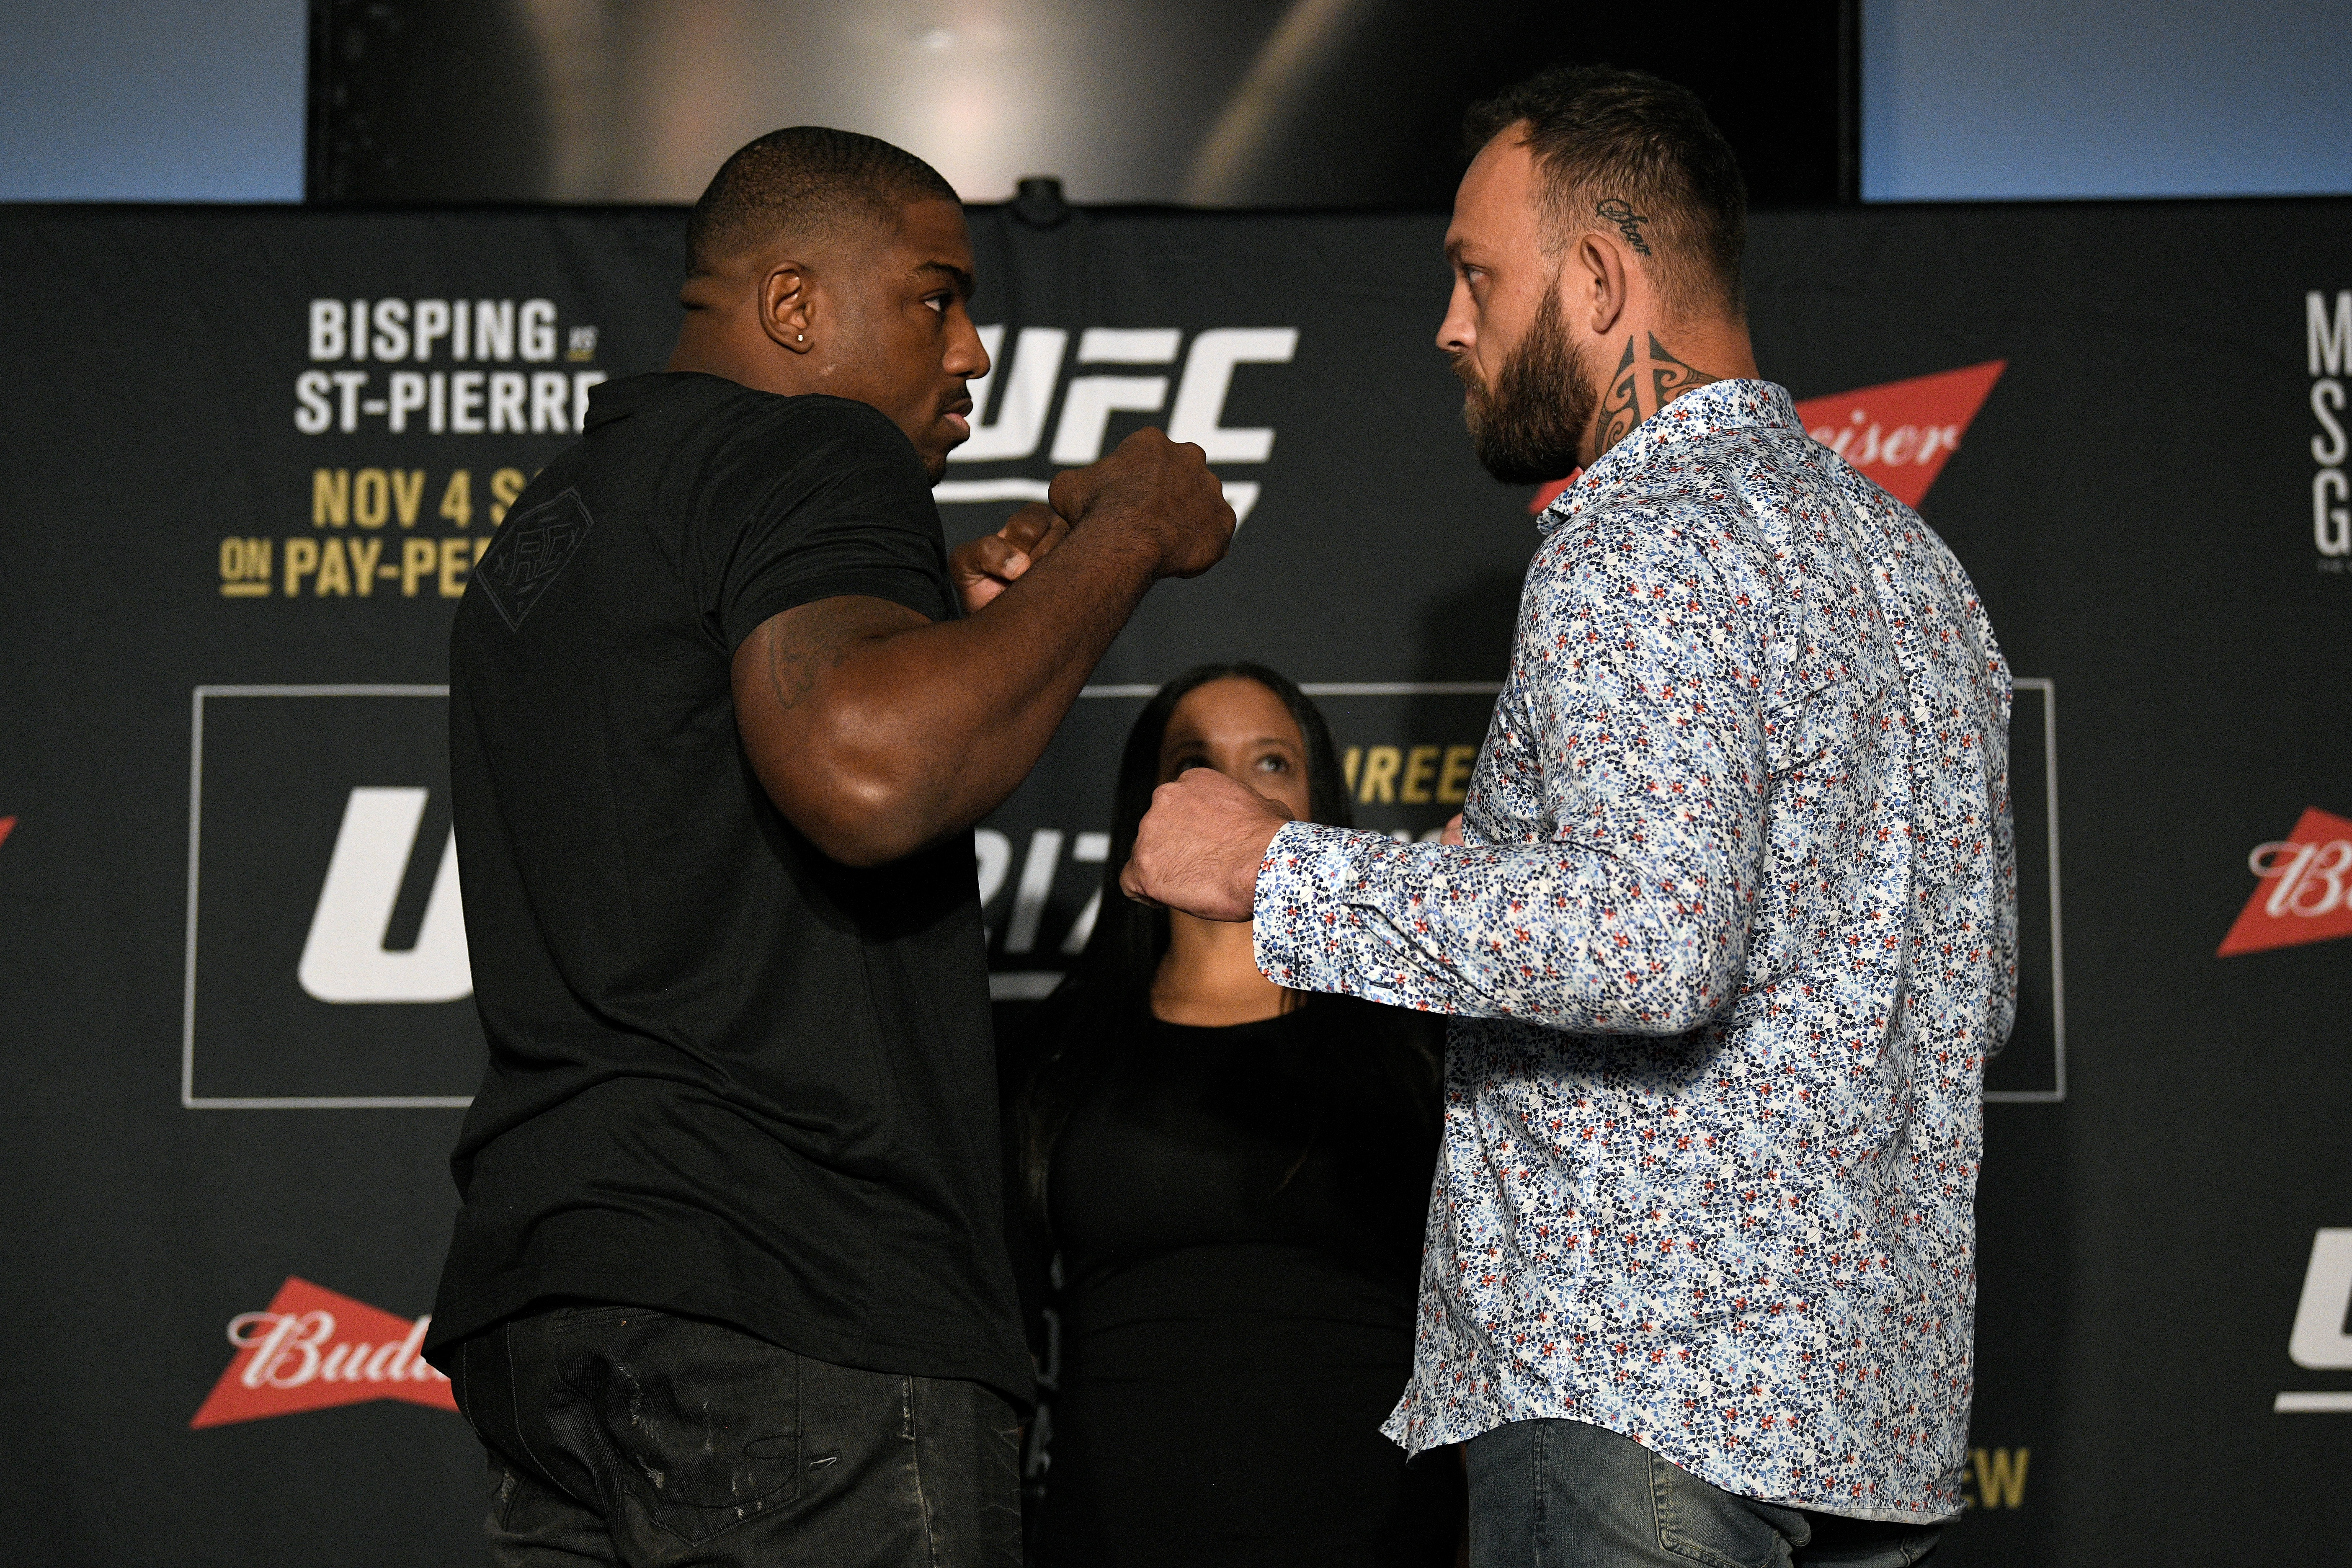 NEW YORK, NY - NOVEMBER 01: (L-R) Opponents Walt Harris and <a href='../fighter/mark-godbeer'><a href='../fighter/mark-godbeer'>Mark Godbeer</a></a> of England face off during the UFC 217 <a href='../event/<a href='../event/Ultimate-Brazil'>Ultimate-</a>Brazil'>Ultimate </a>Media Day inside the Theater Lobby at Madison Square Garden on November 1, 2017 in New York City. (Photo by Jeff Bottari/Zuffa LLC/Zuffa LLC via Getty Images)